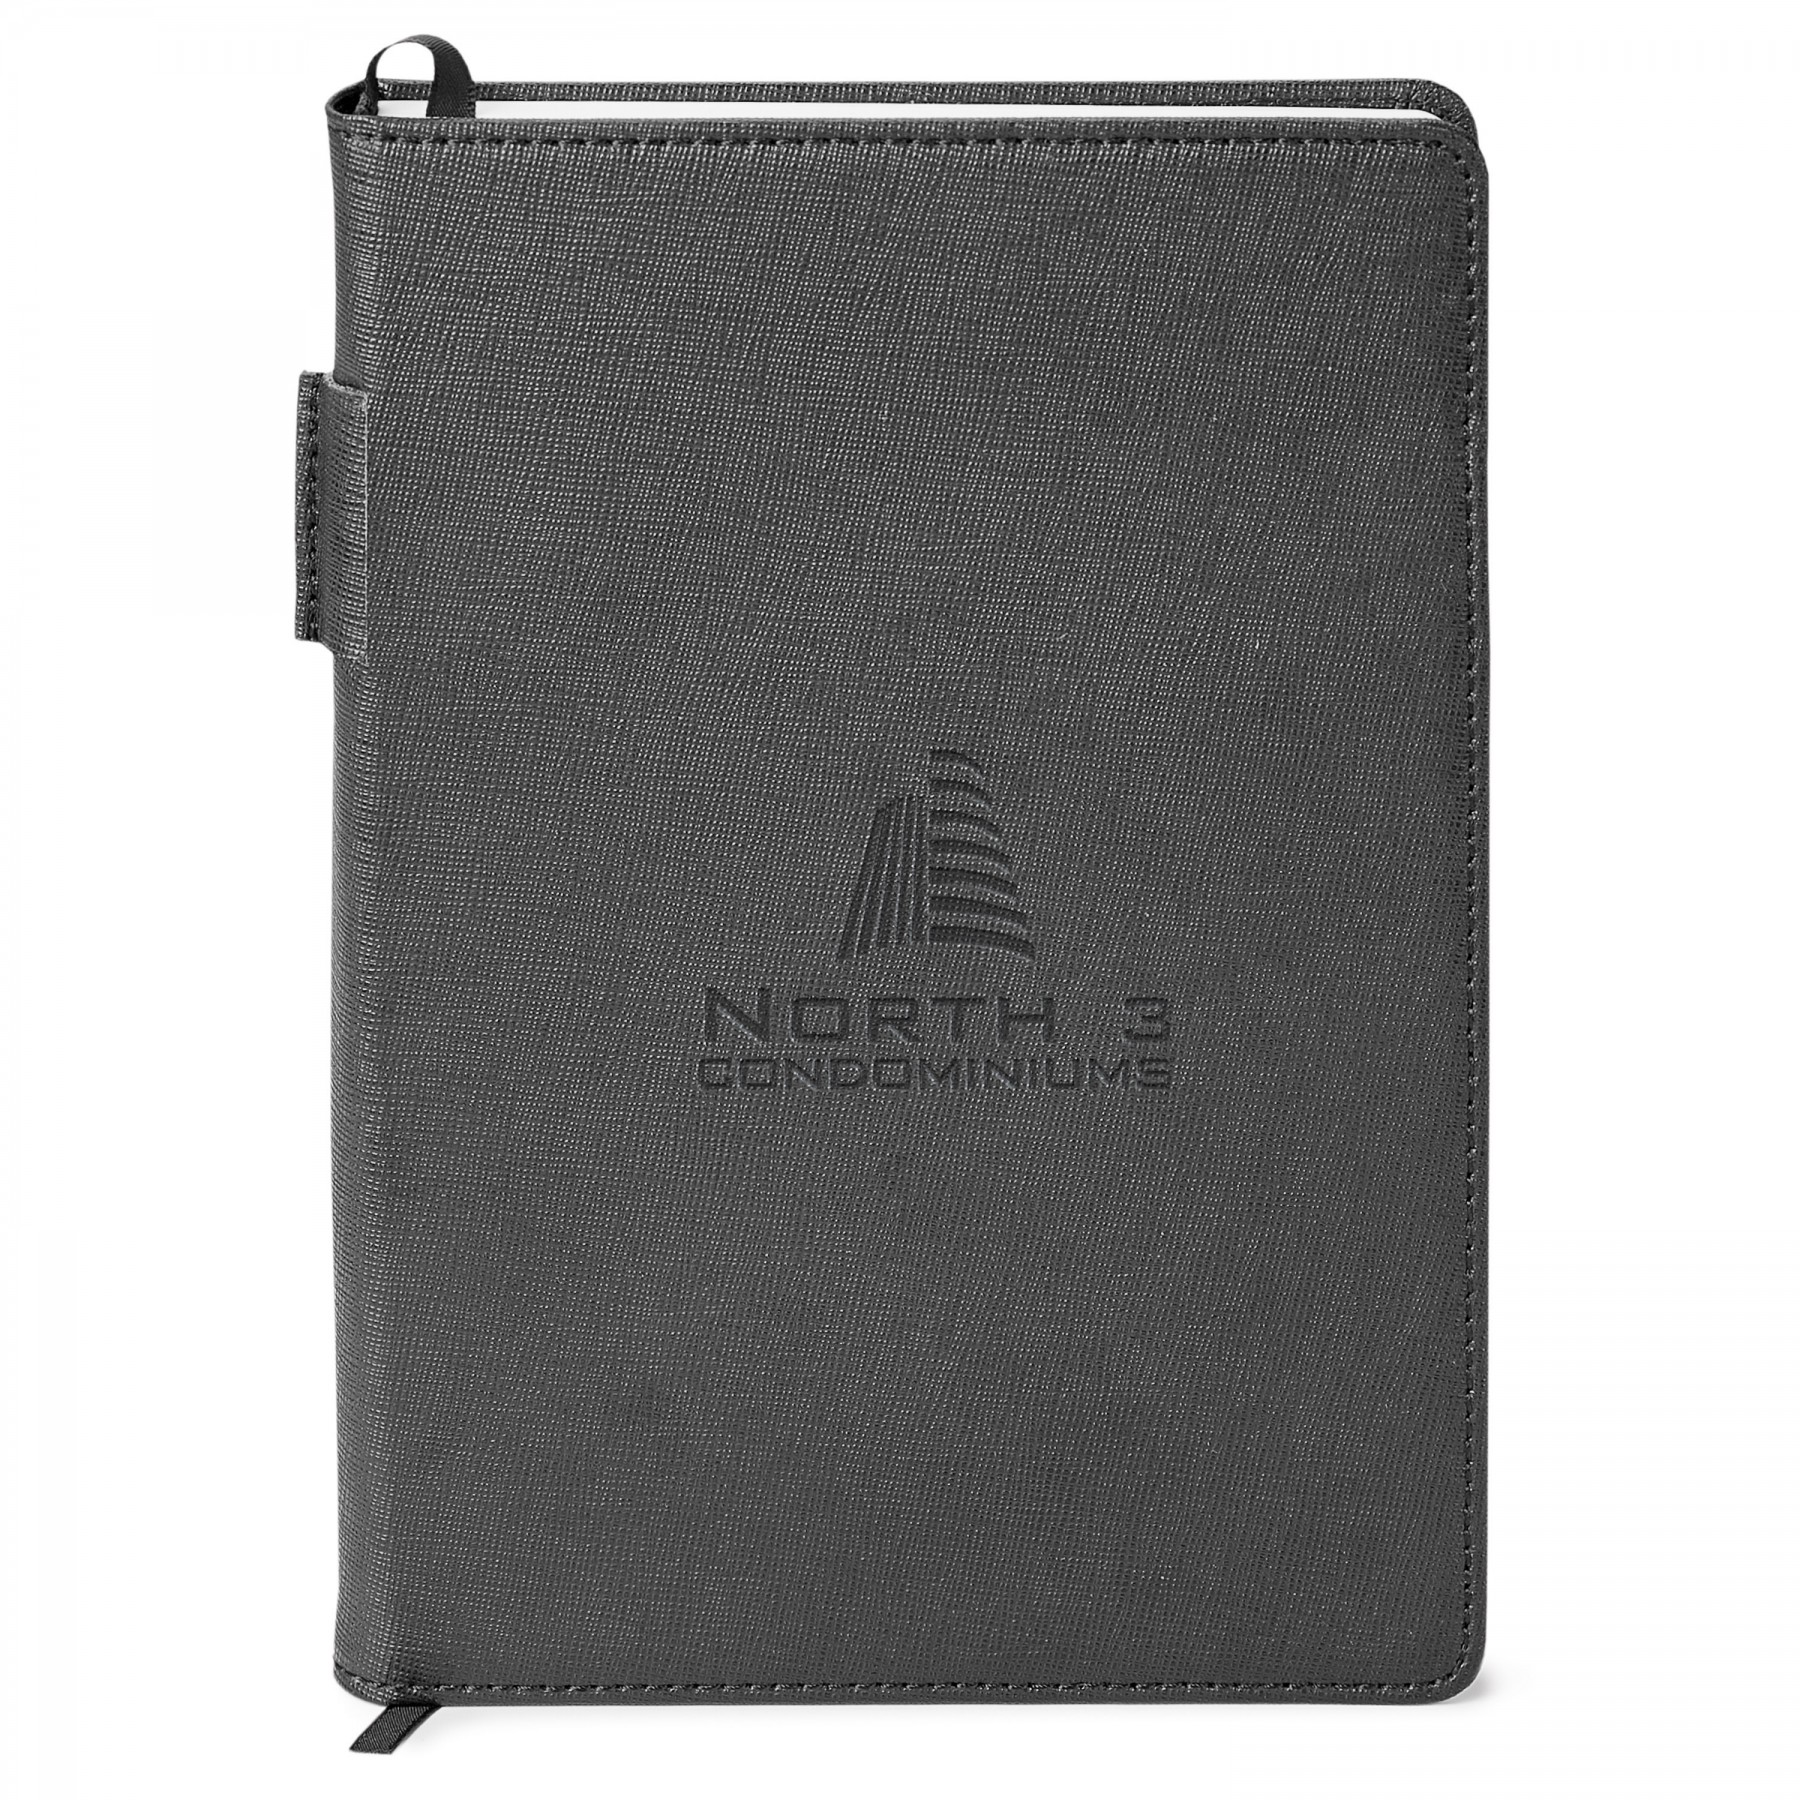 Genuine Leather Non-Refillable Journal, ST4660, Debossed Logo